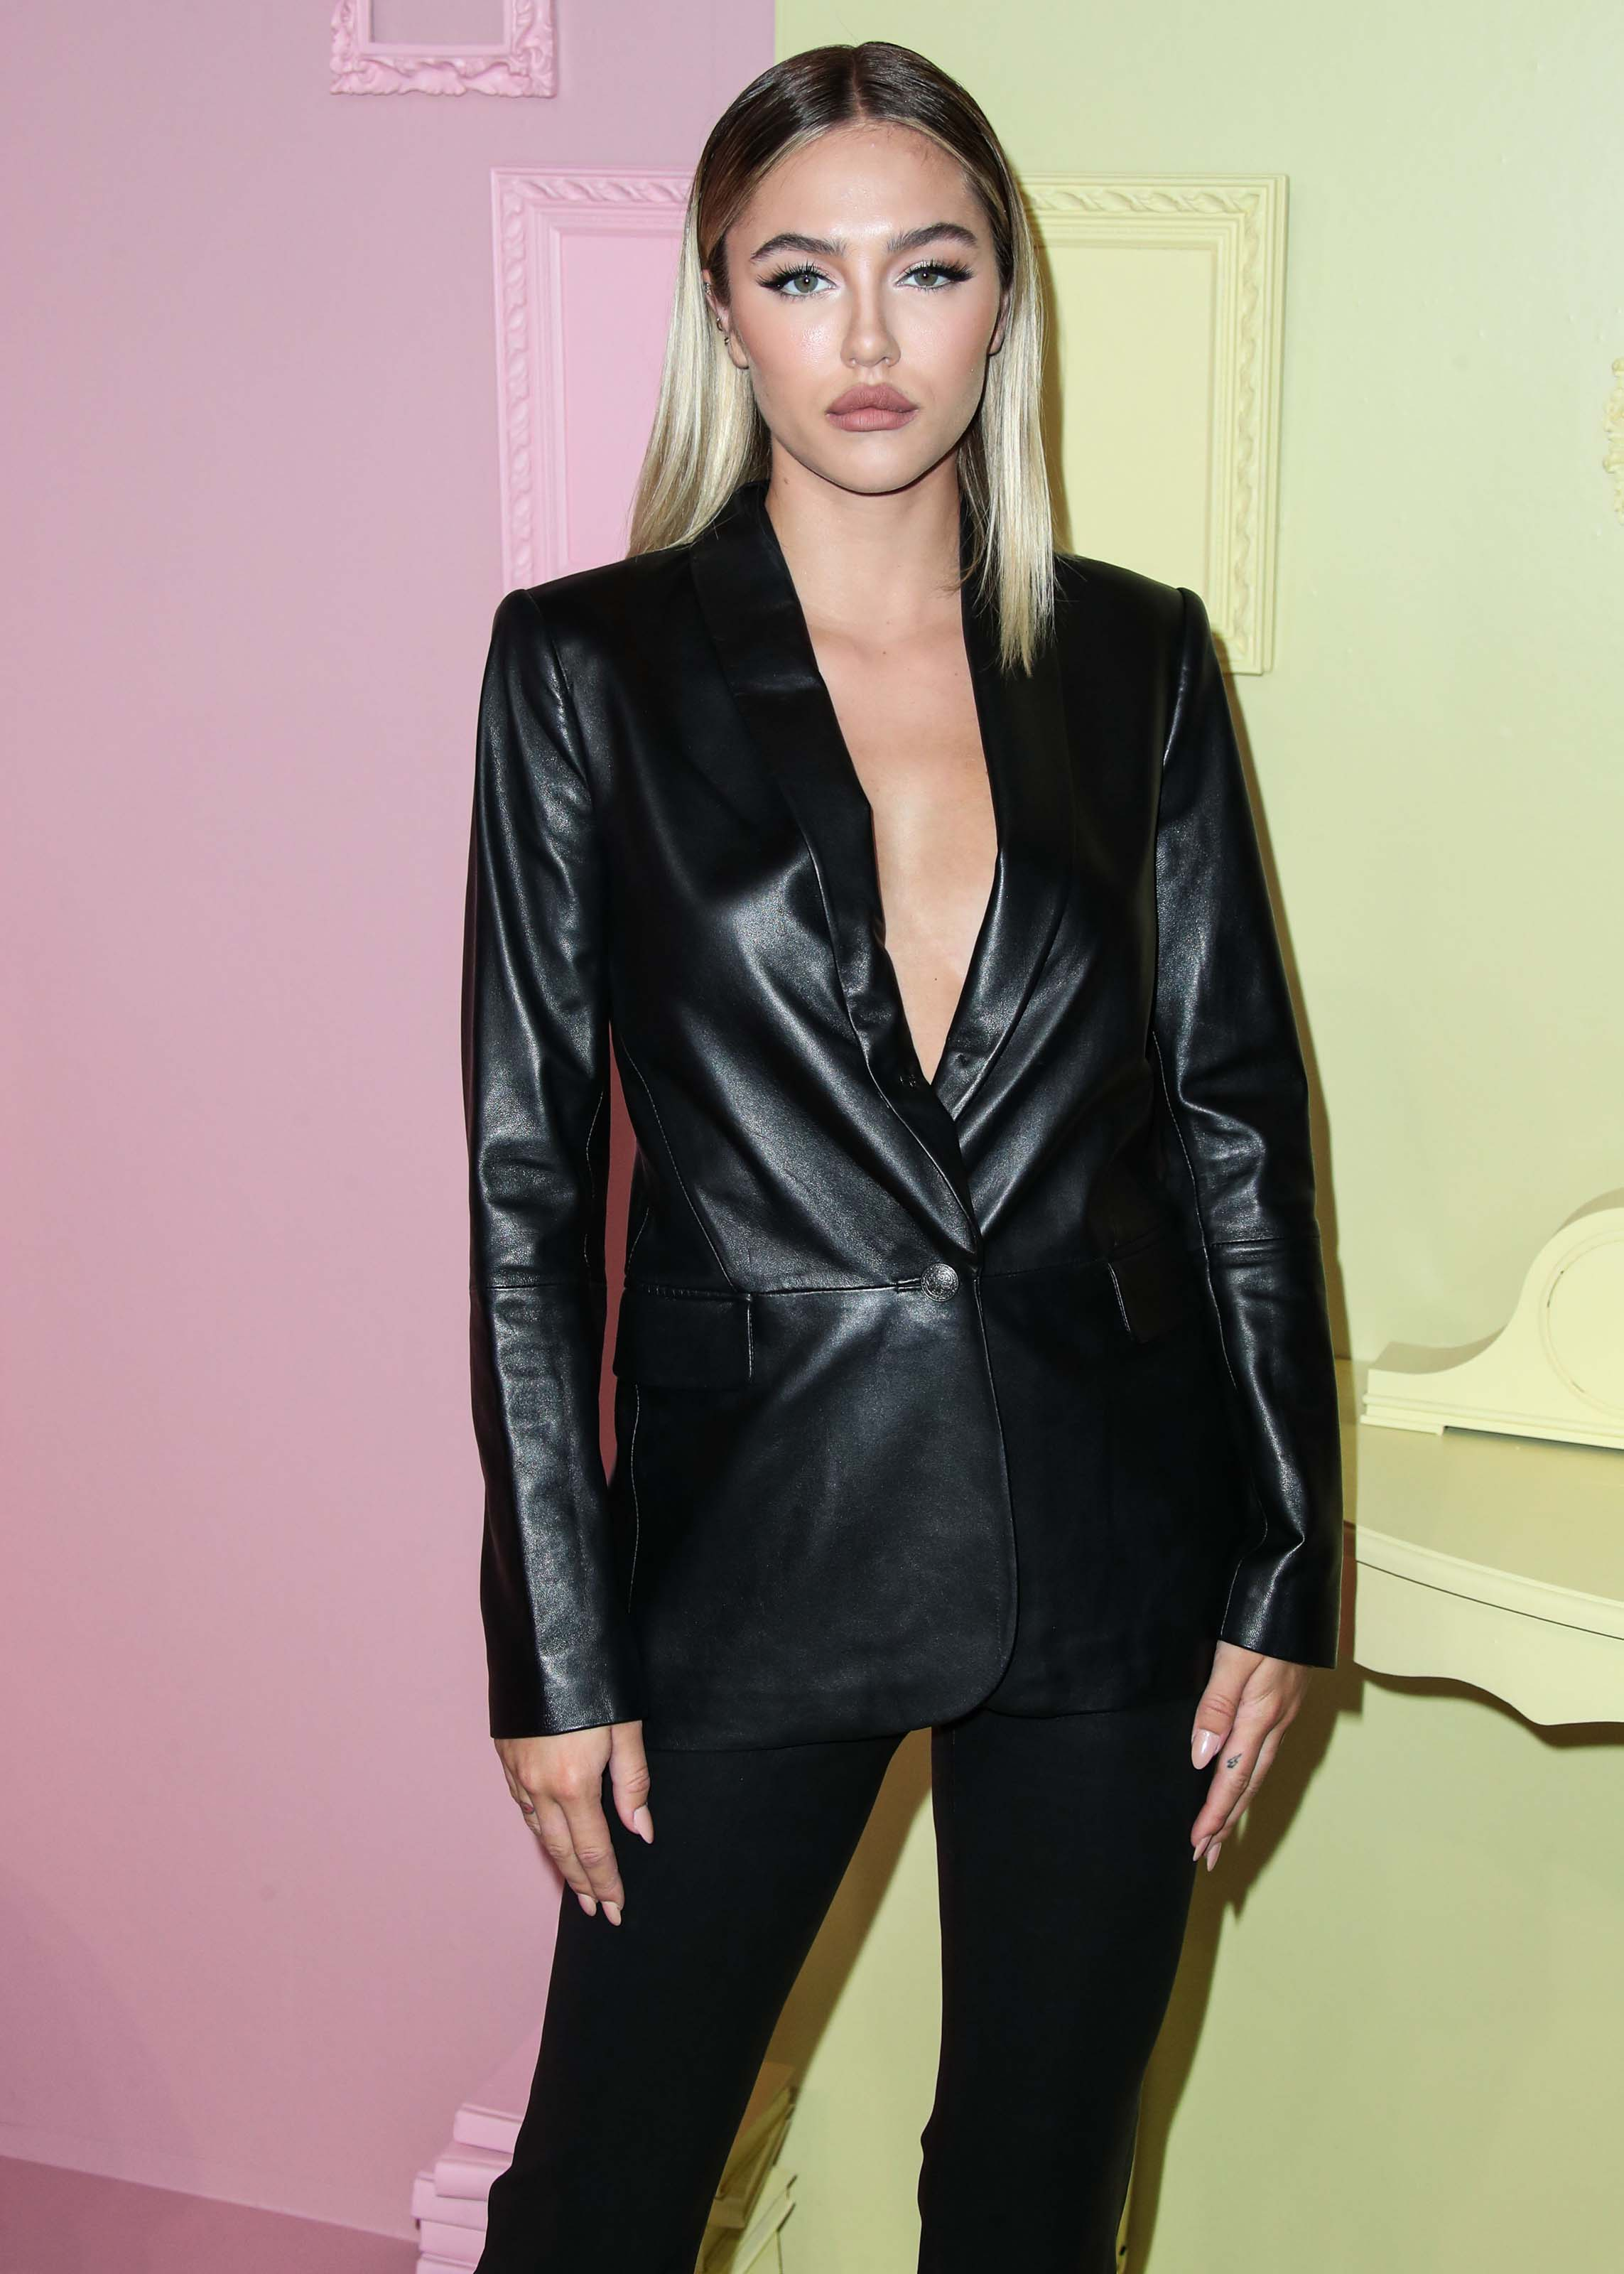 Delilah Hamlin attends Alice and Olivia show